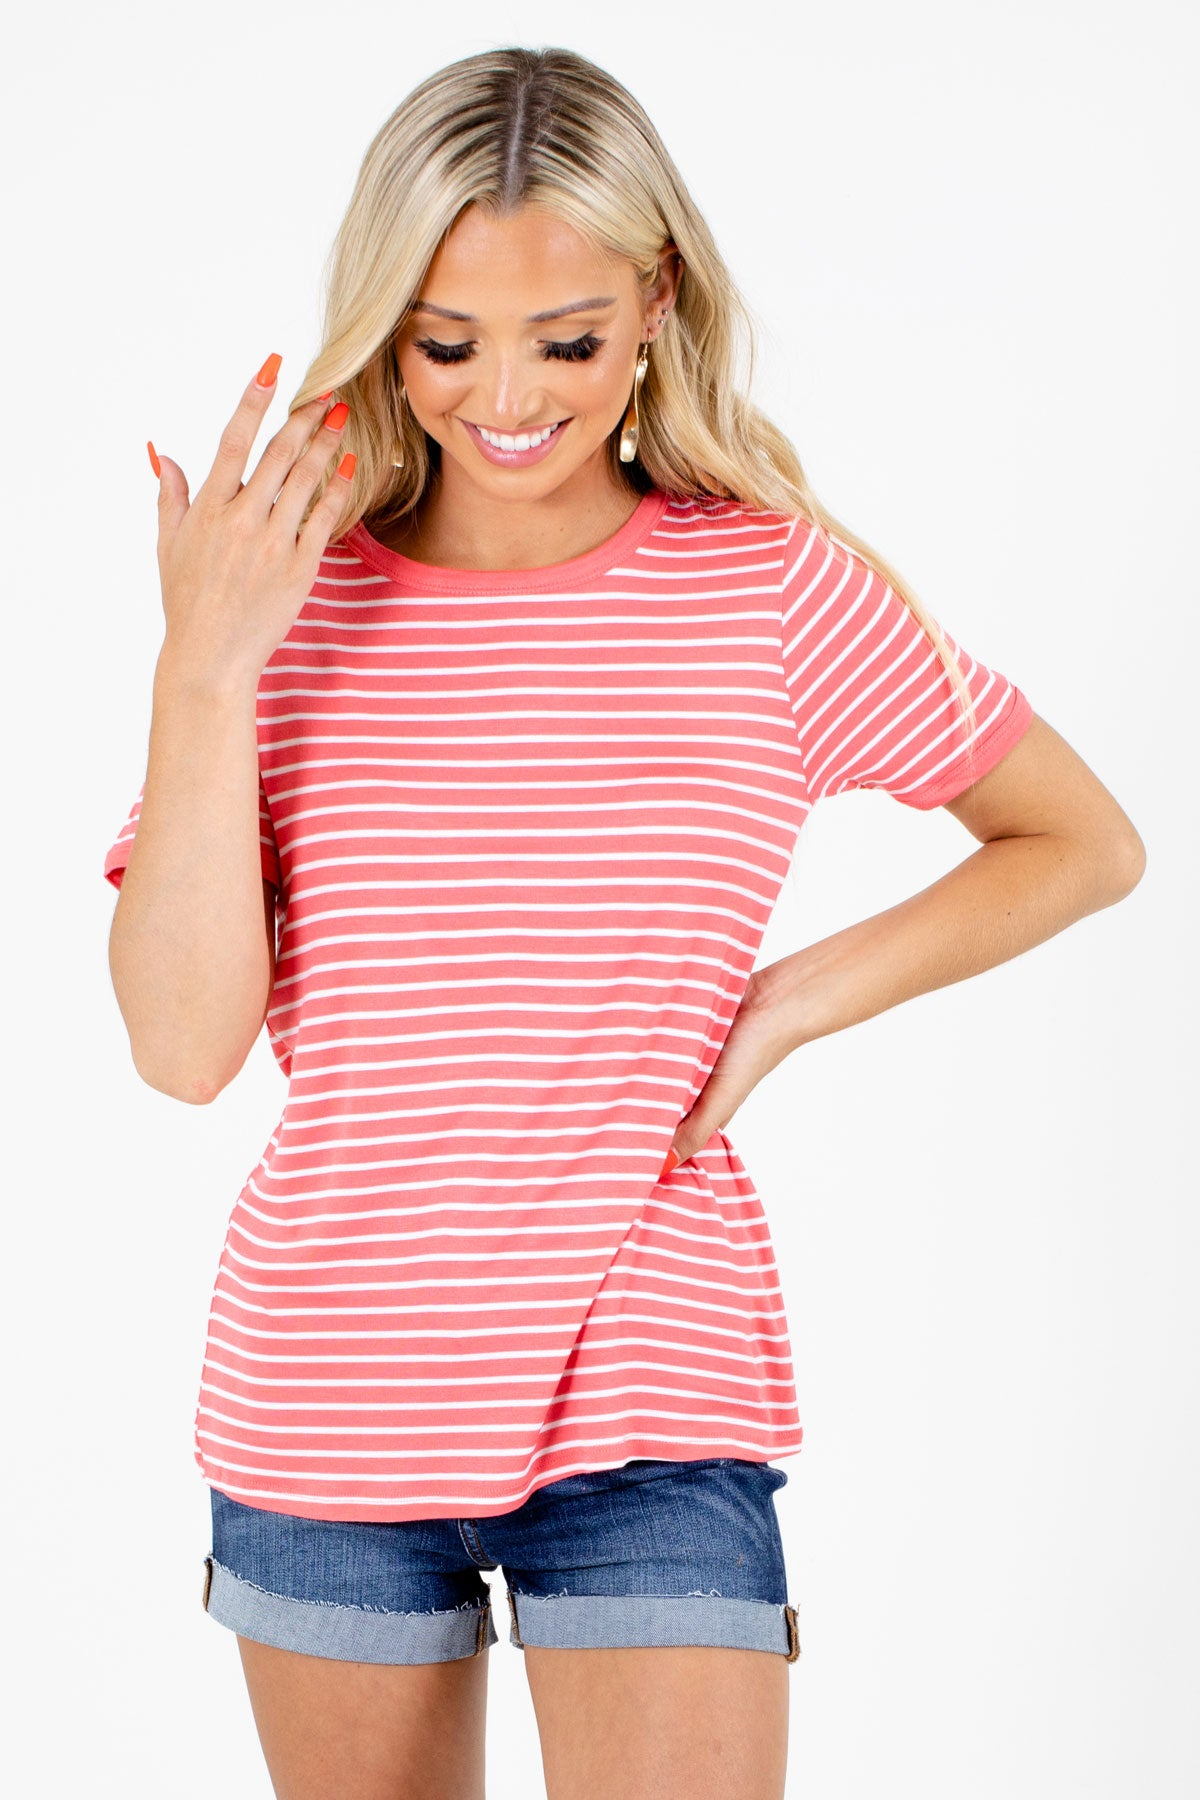 Pink and White Striped Boutique Tops for Women